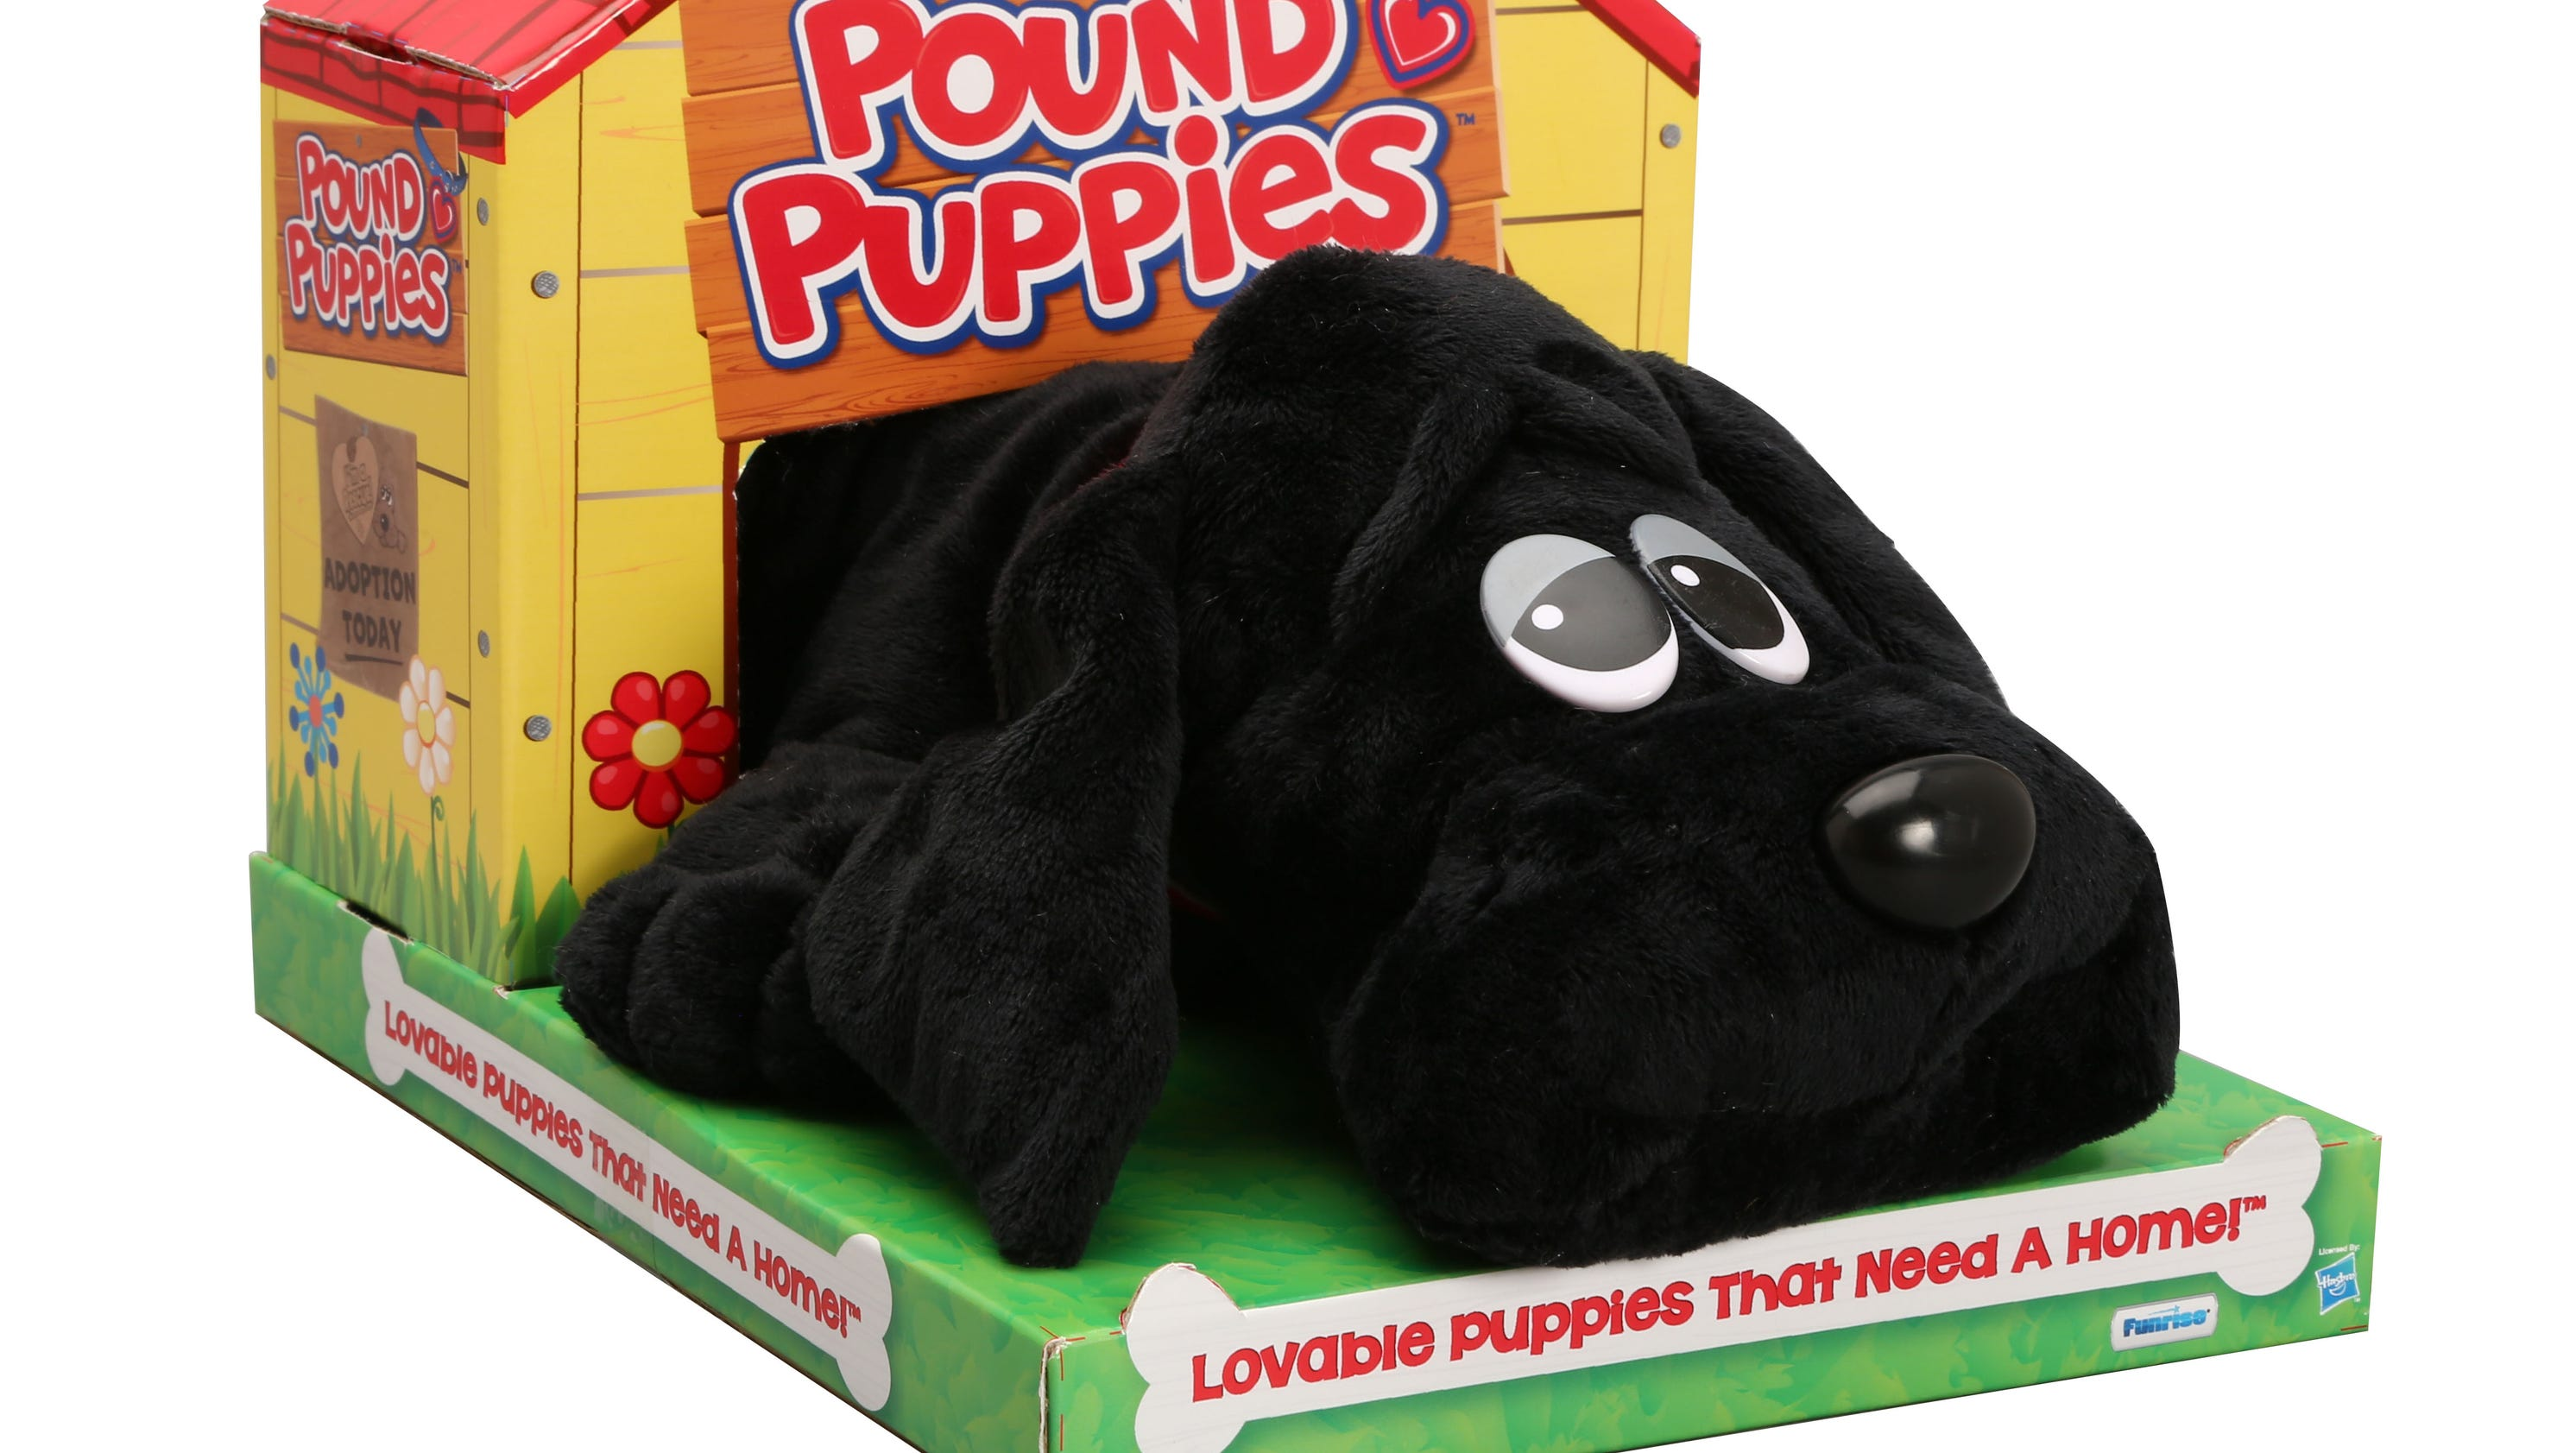 Pound Puppies The 80s pooches make a eback